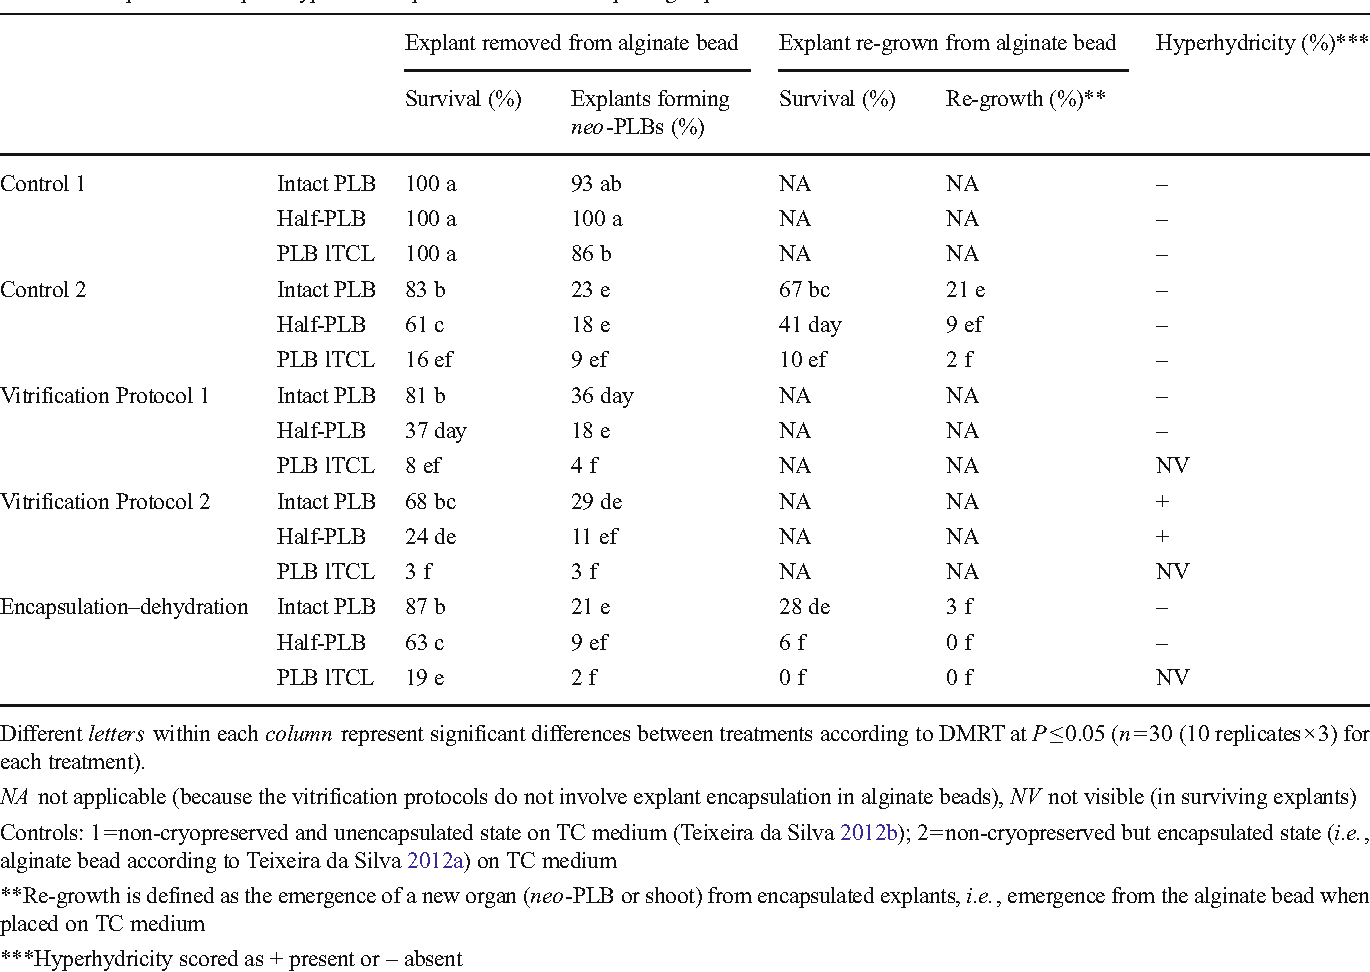 Table 1. Responses of explant types to encapsulation 30 d after replating explants